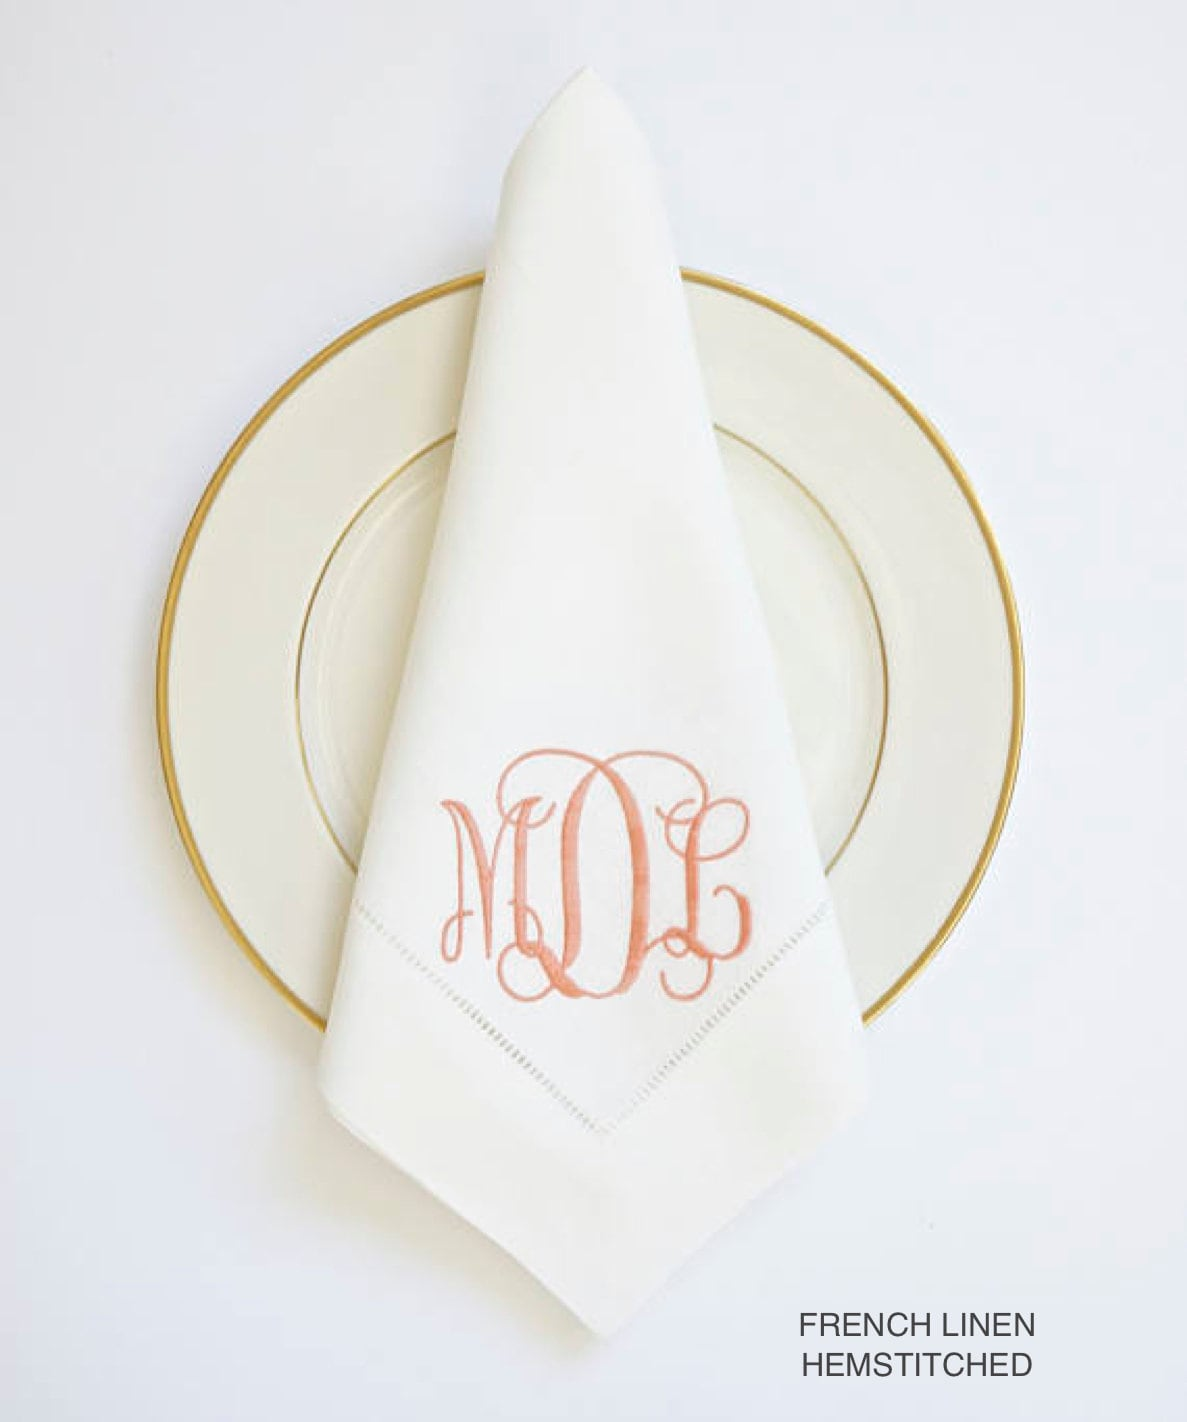 Embroidered Towels For Wedding Gift: Lace Monogram Embroidered Linen Dinner Napkins And Towels